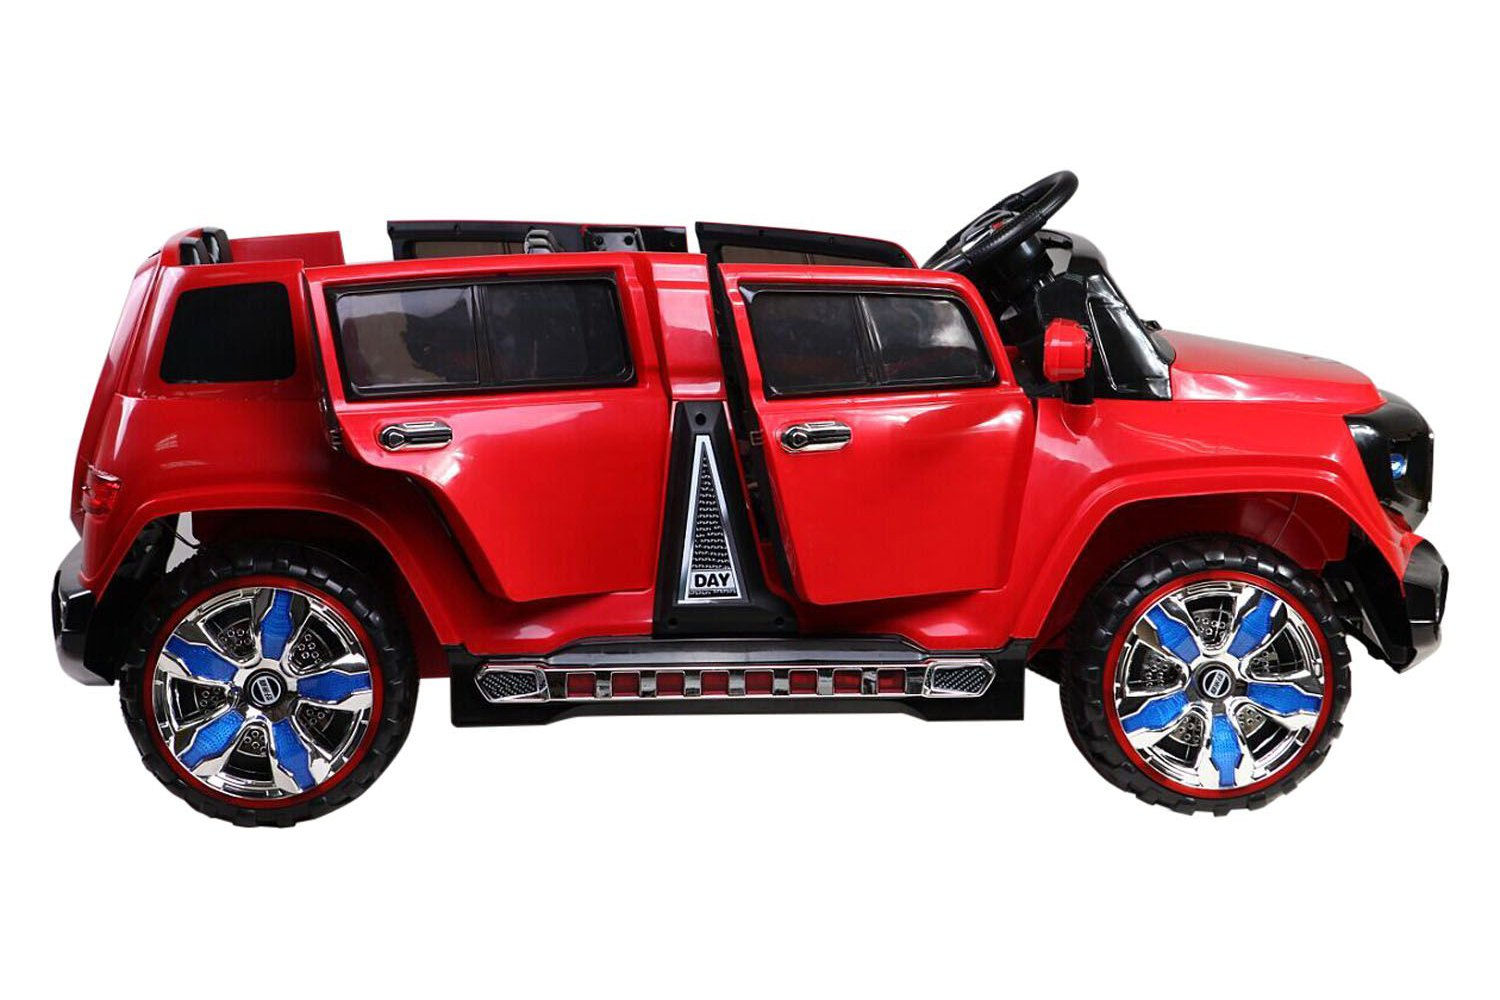 Best Ride On Cars Seat SUV SX V Red Seat V Red - Ride on cars